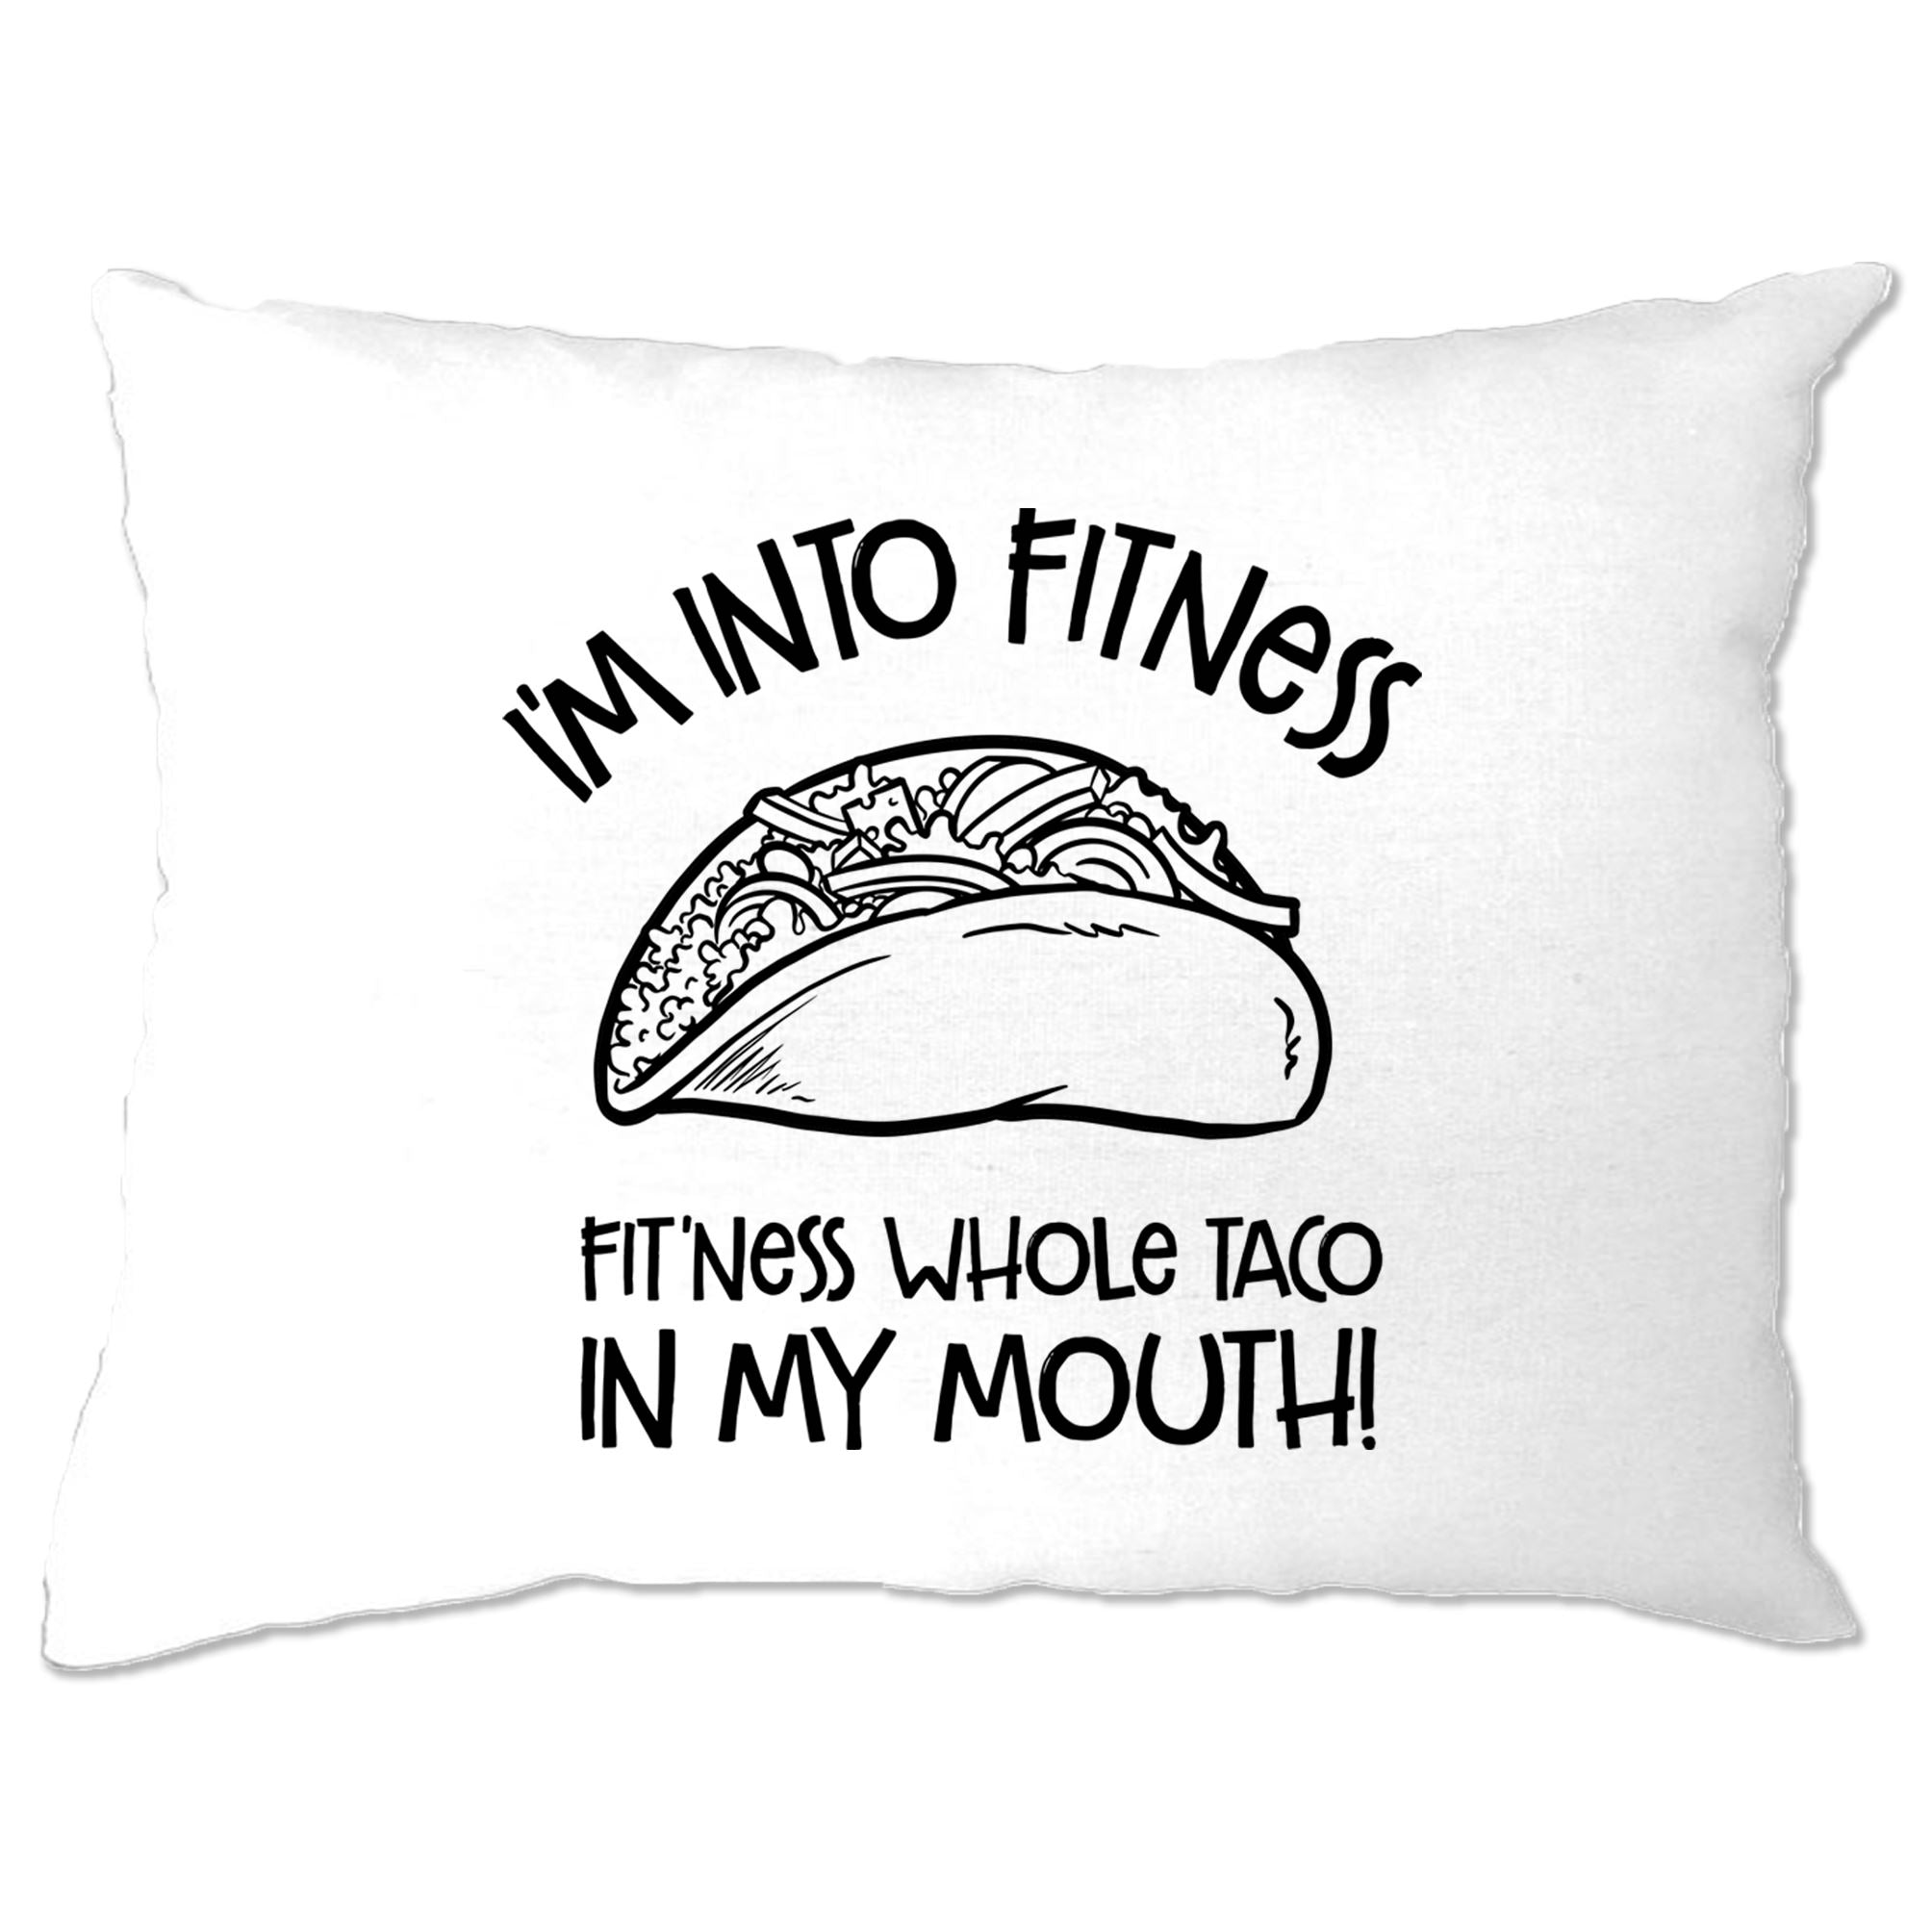 Funny Pillow Case I'm Into Fitness Whole Taco In My Mouth